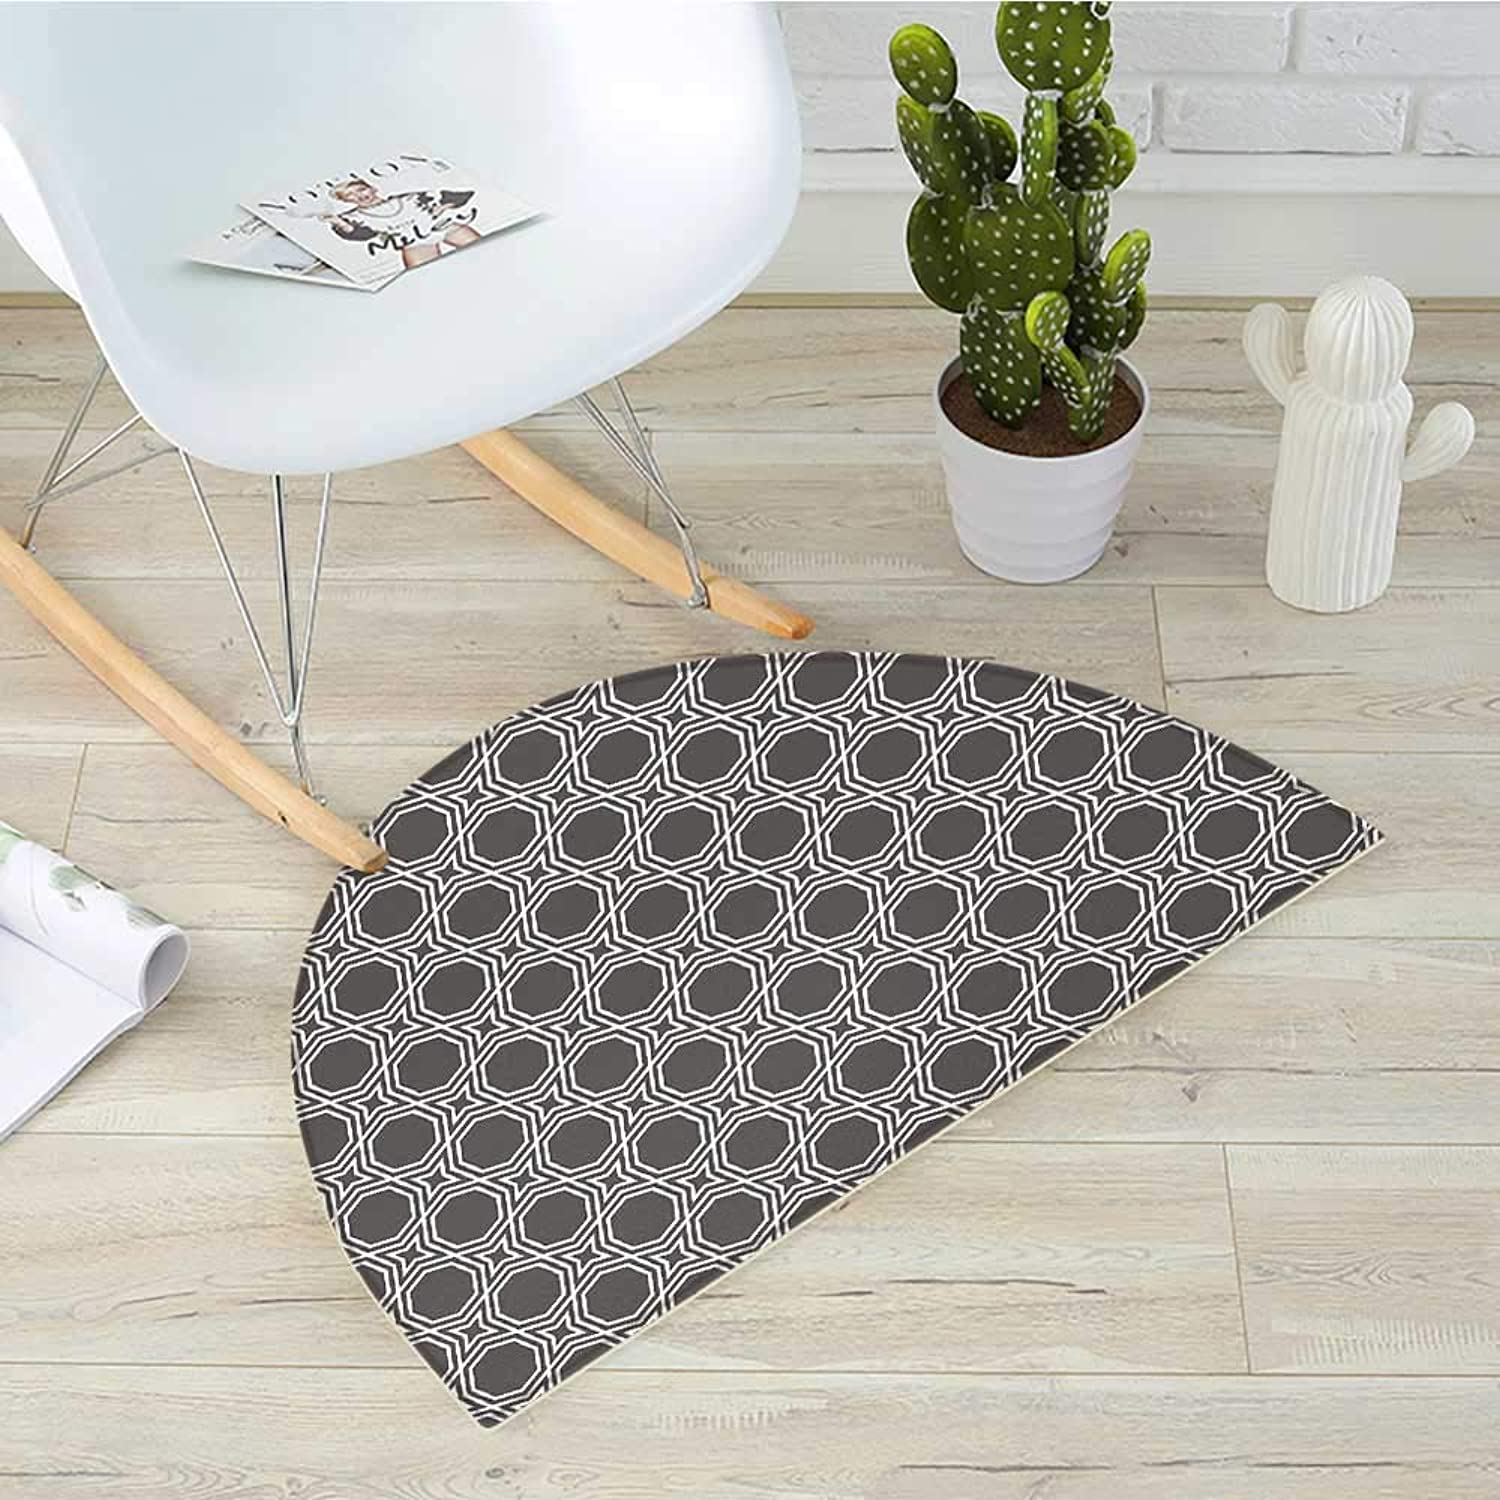 Geometric Semicircular CushionOctagons with Star Pattern Monochrome Arabic Culture Ethnic Illustration Entry Door Mat H 39.3  xD 59  Charcoal Grey White